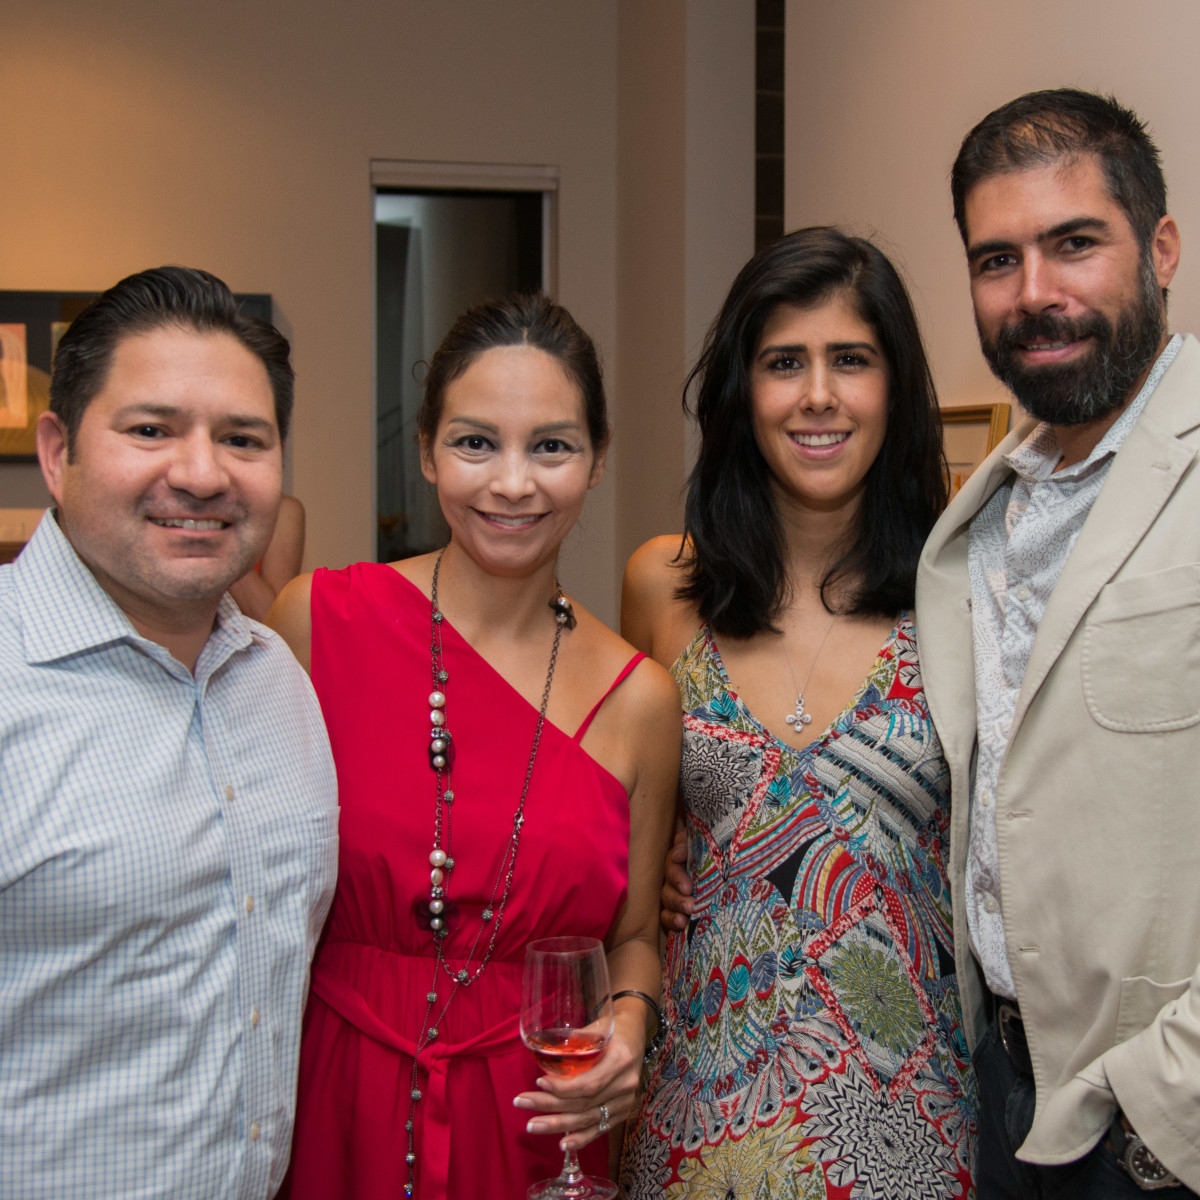 Houston, HGO Young Patrons event, October 2015, Gerard Trevino, Kimberly Trevino, Alejandra Lozano, Hector Torres